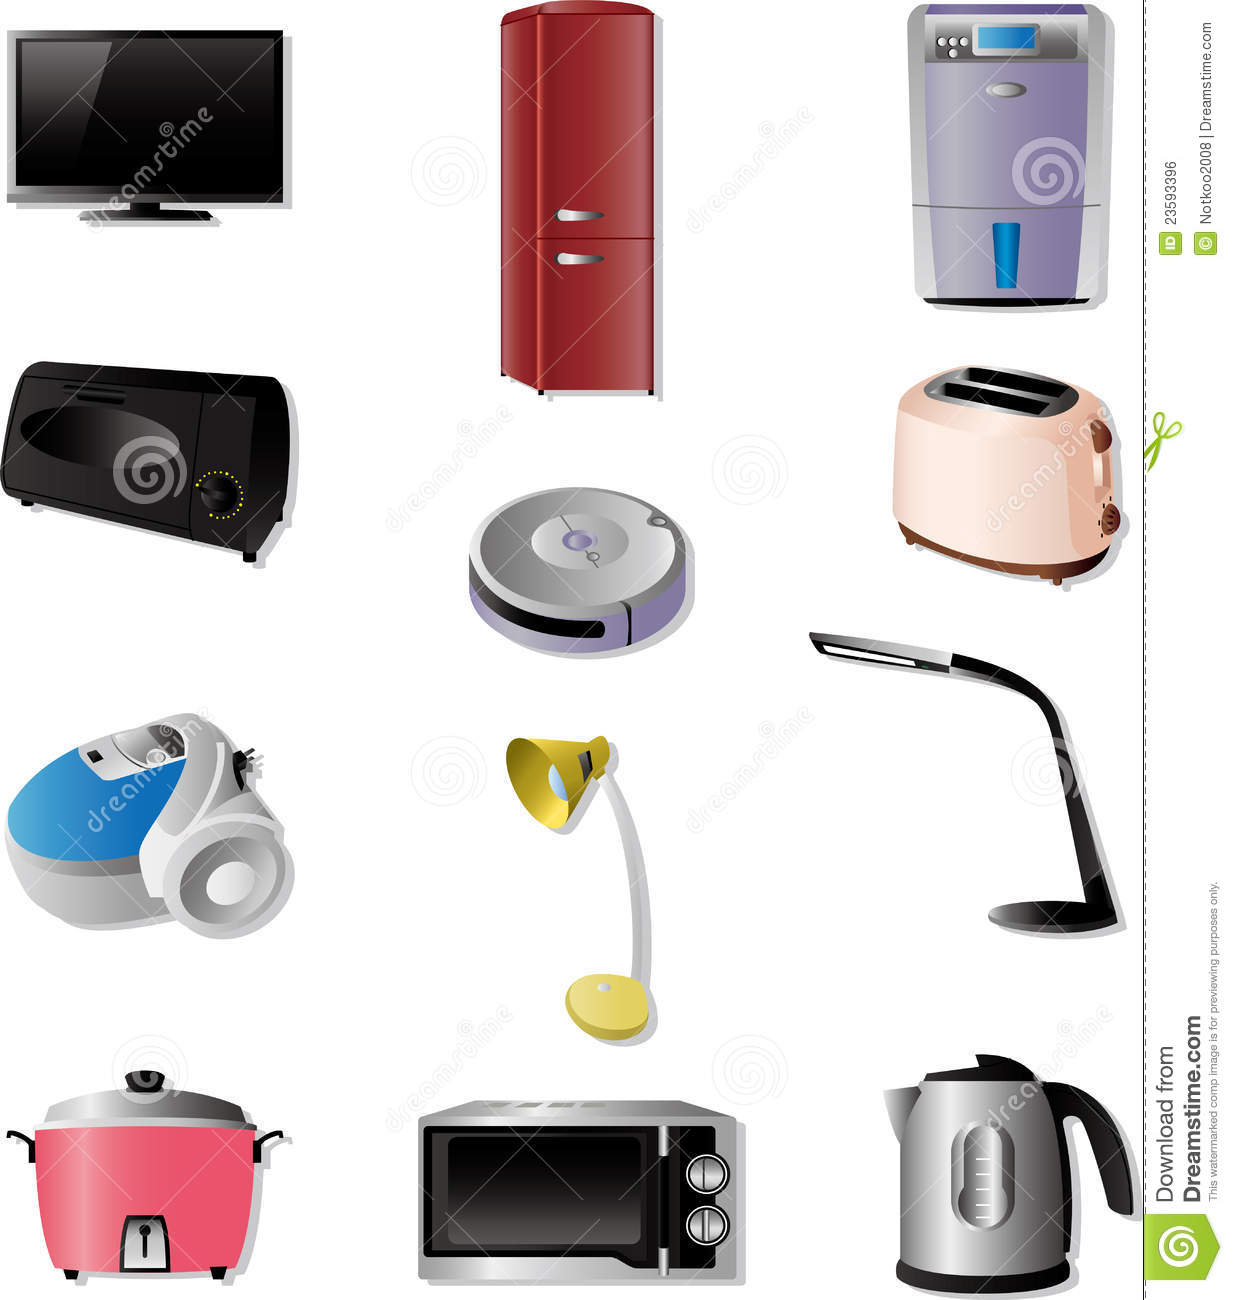 home appliances icons royalty free stock image image 23593396. Black Bedroom Furniture Sets. Home Design Ideas